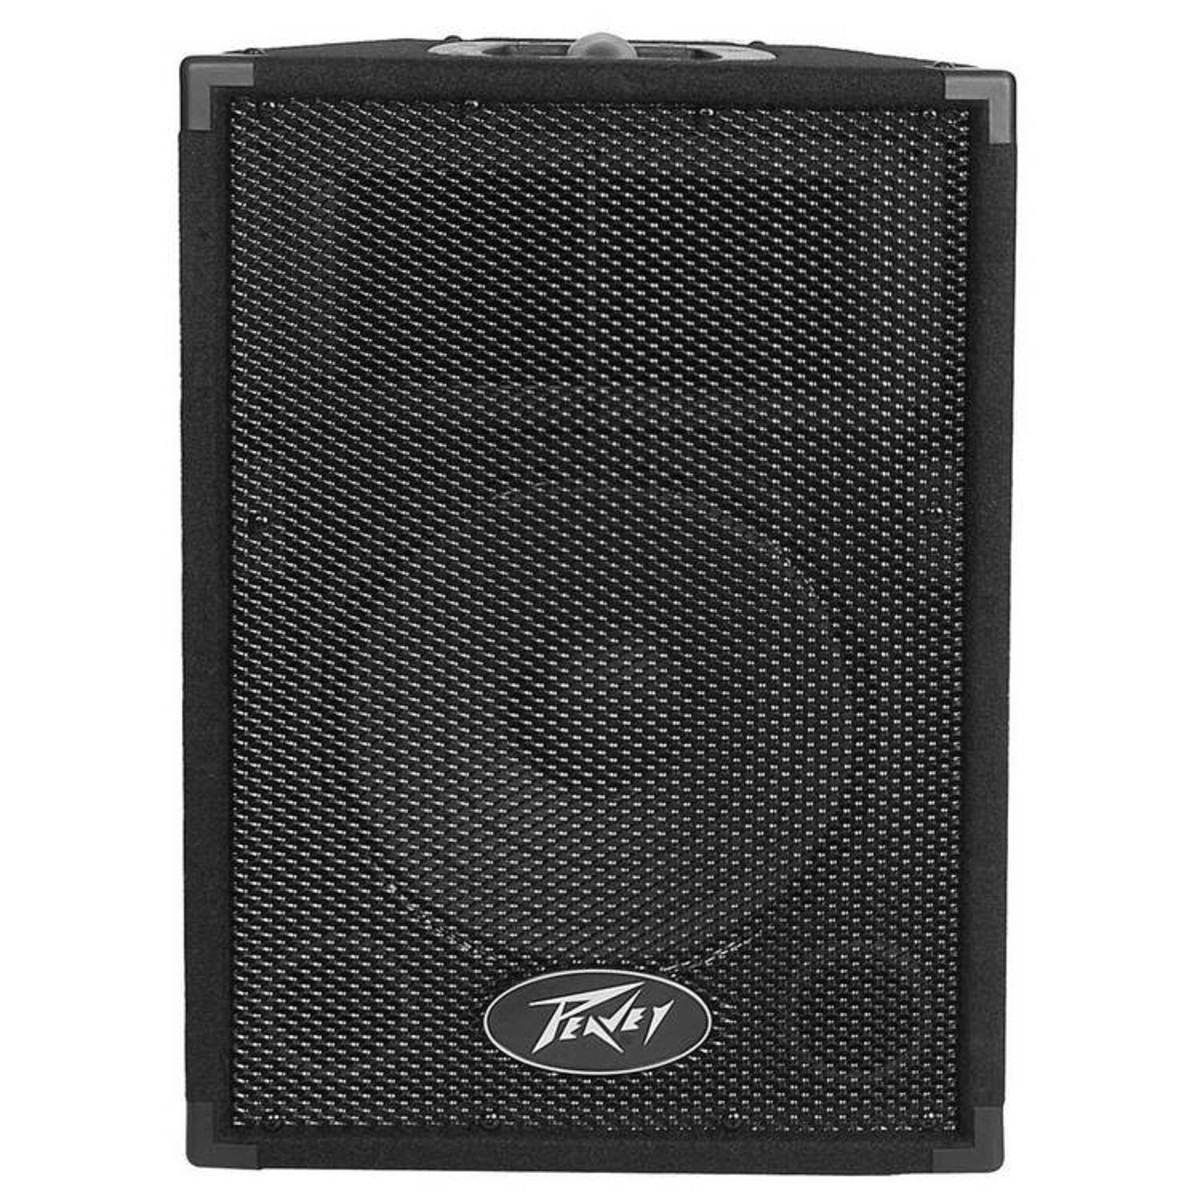 Peavey Audio Performer Pack Portable Pa System At Gear4music